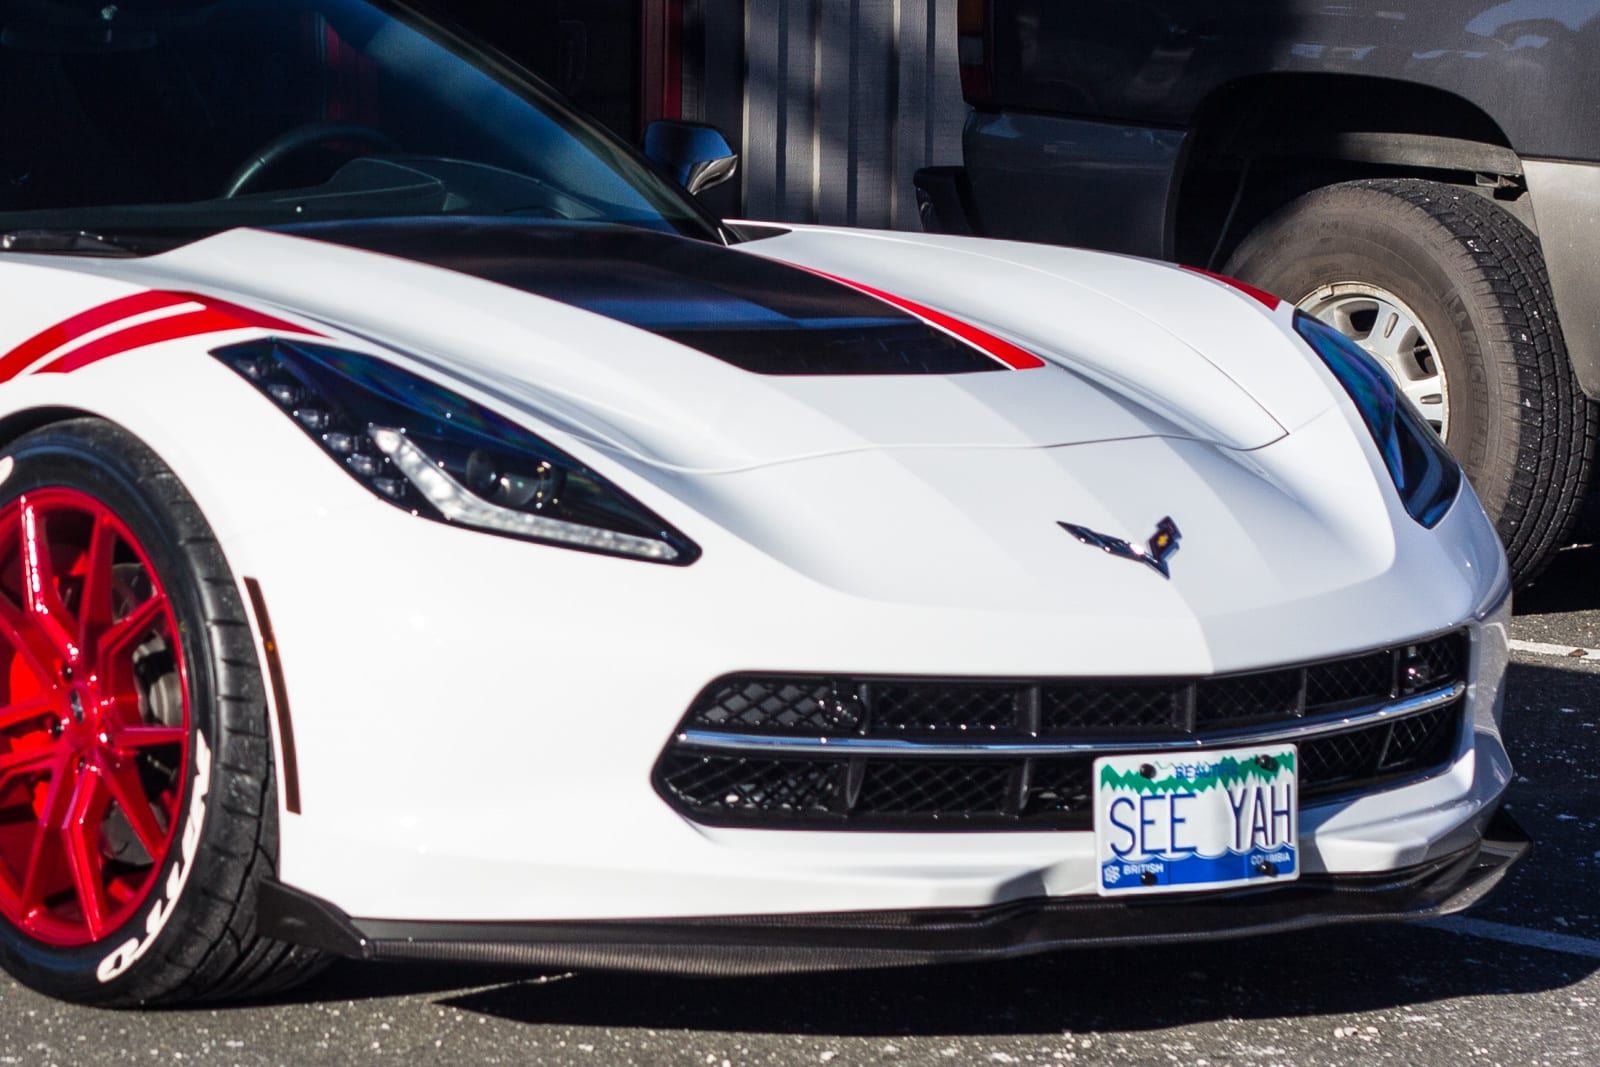 This Stingray sports the vanity custom license plate SEE YAH in white, blue, and green.